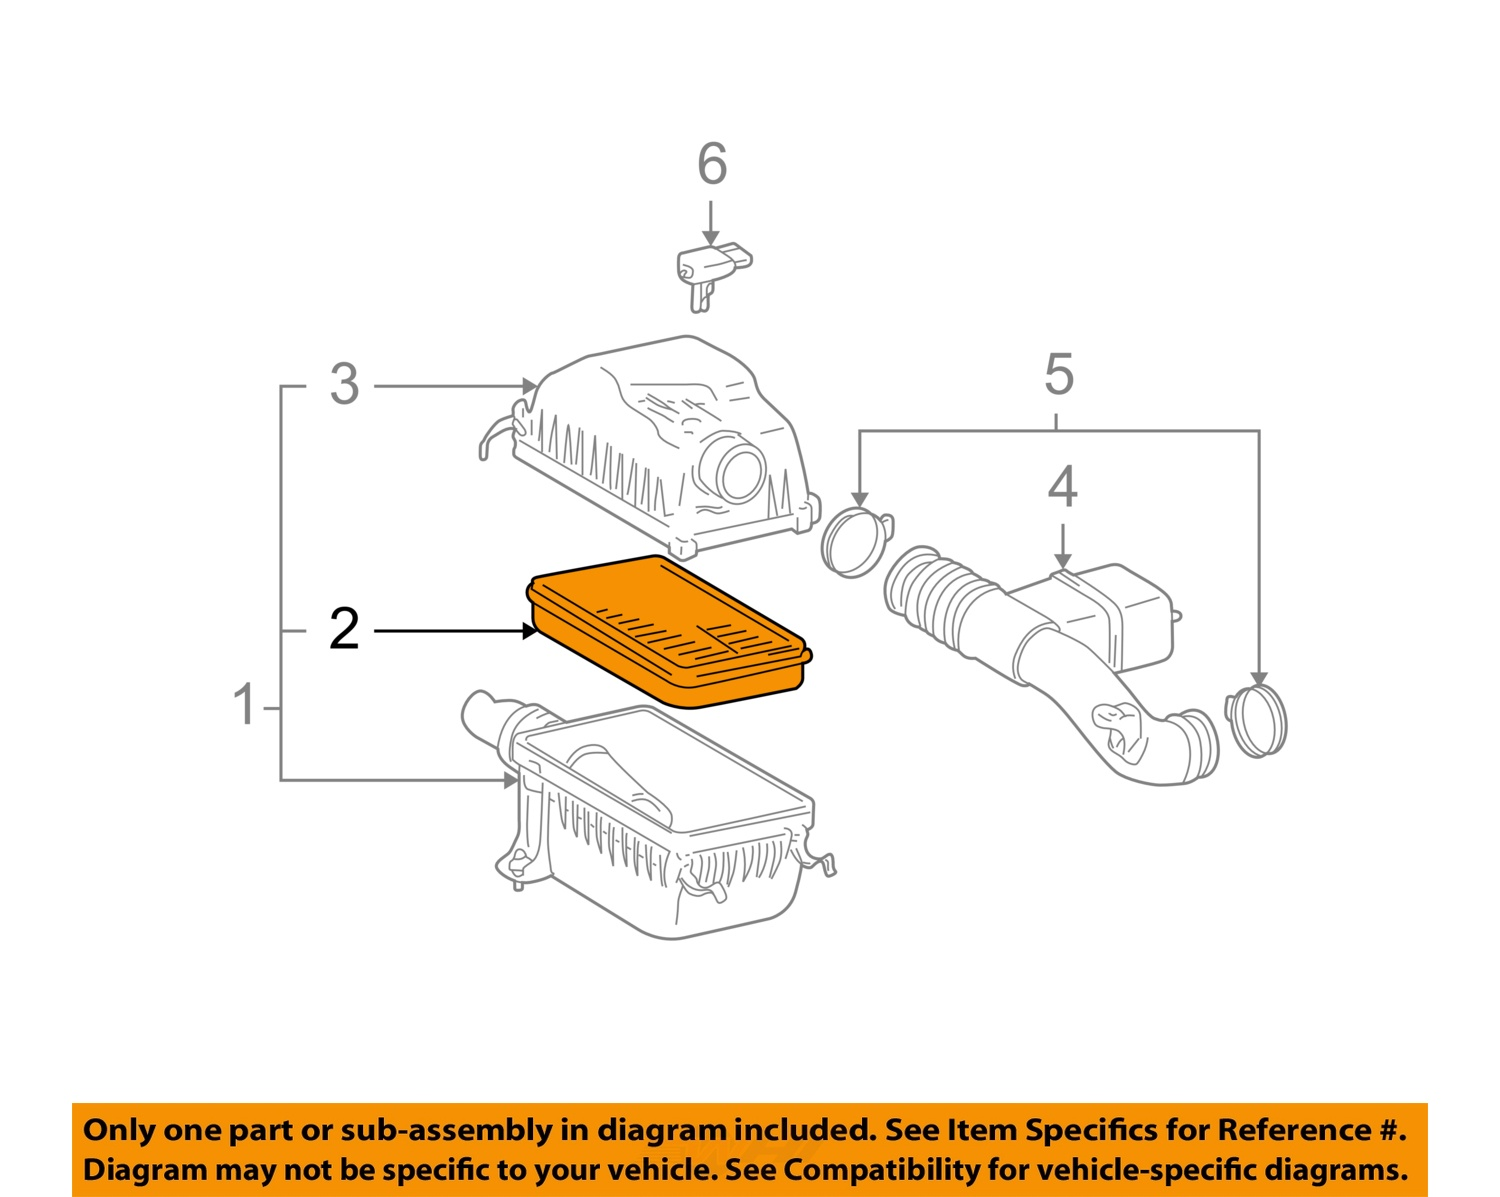 toyota oem engine air filter for tundra and sequoia 17801-07010 2 2 of 3